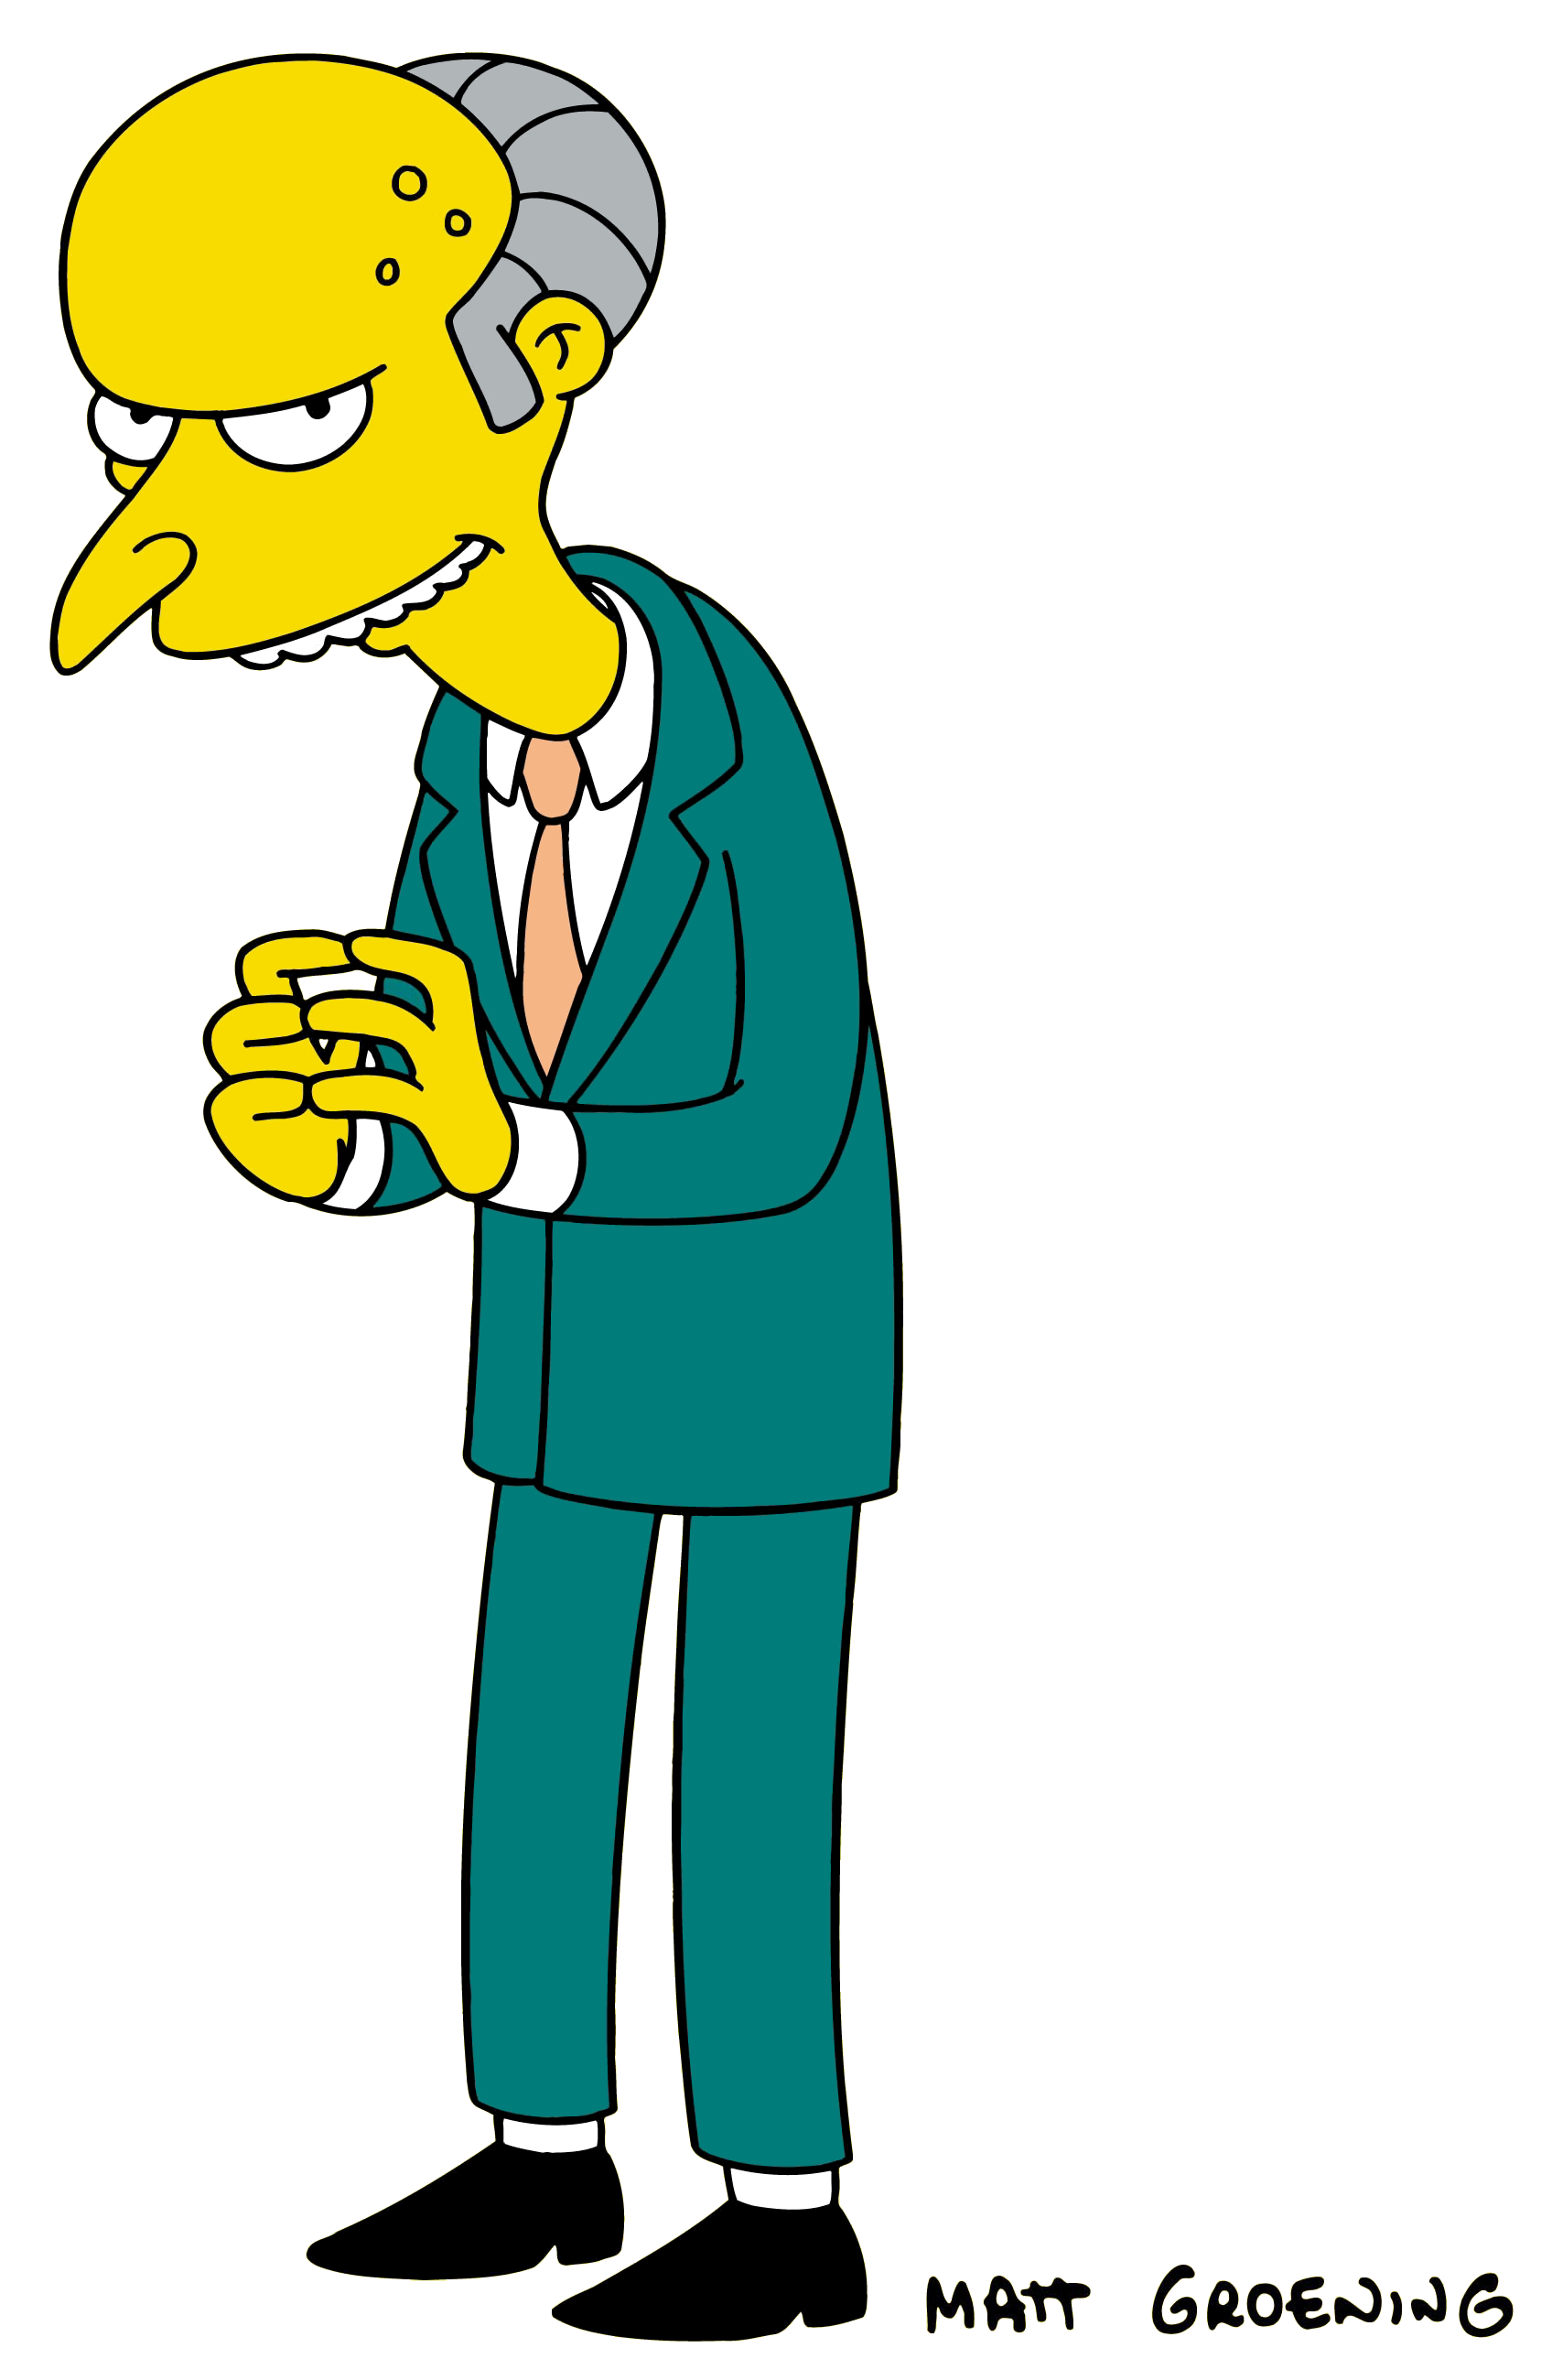 Simpsons characters png. Charles montgomery burns pinterest